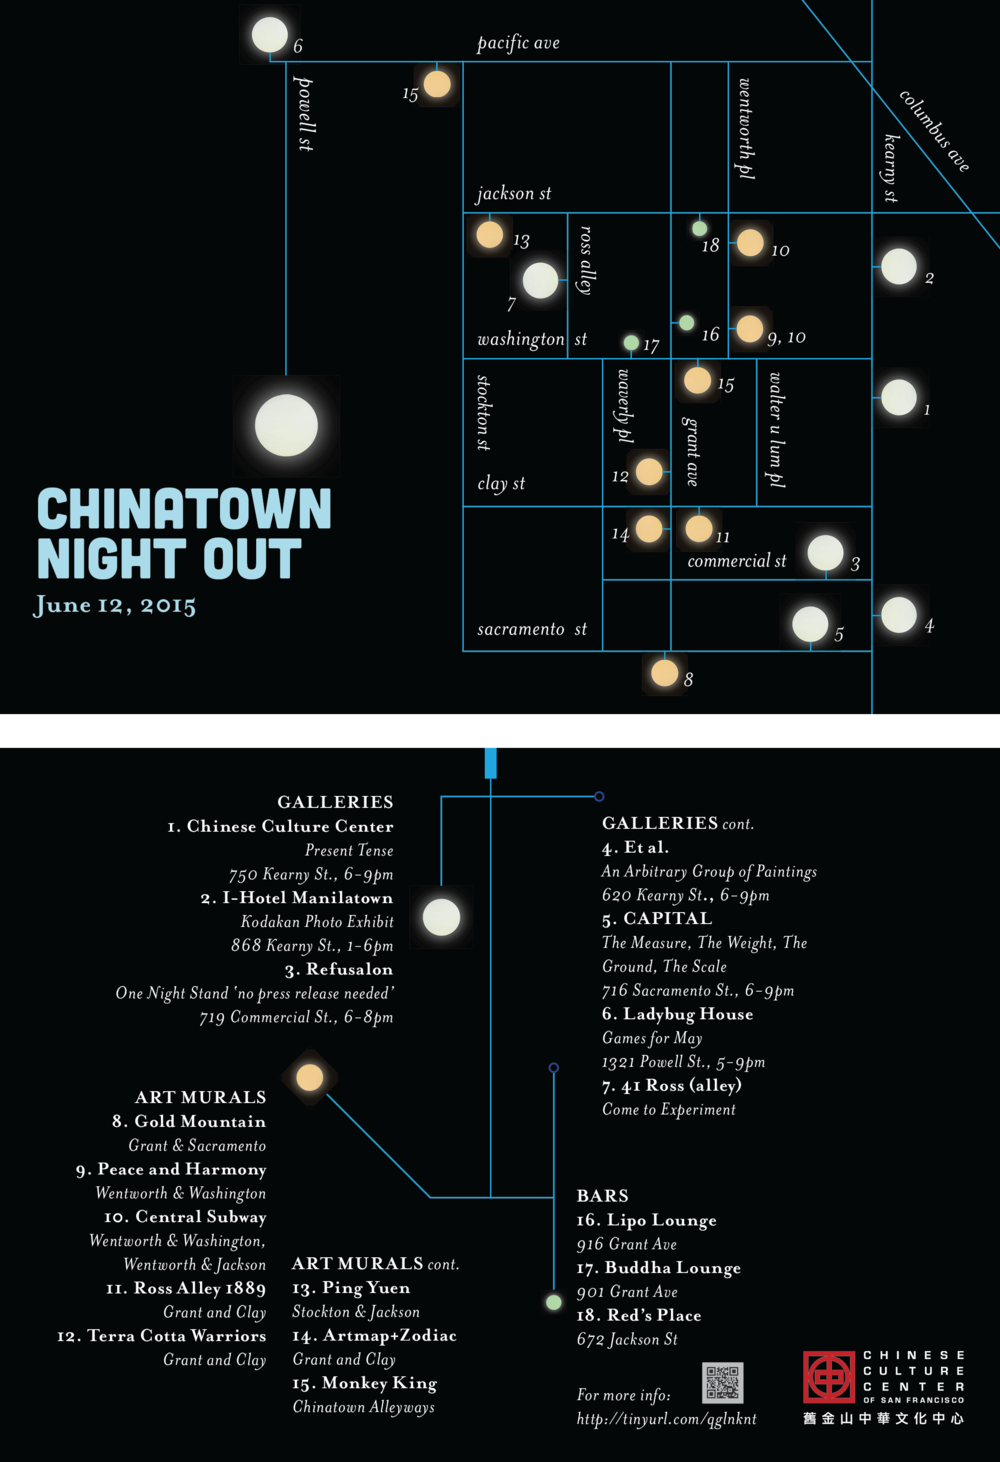 Chinatown Night Out 2015 (Designed by Kai Lin)